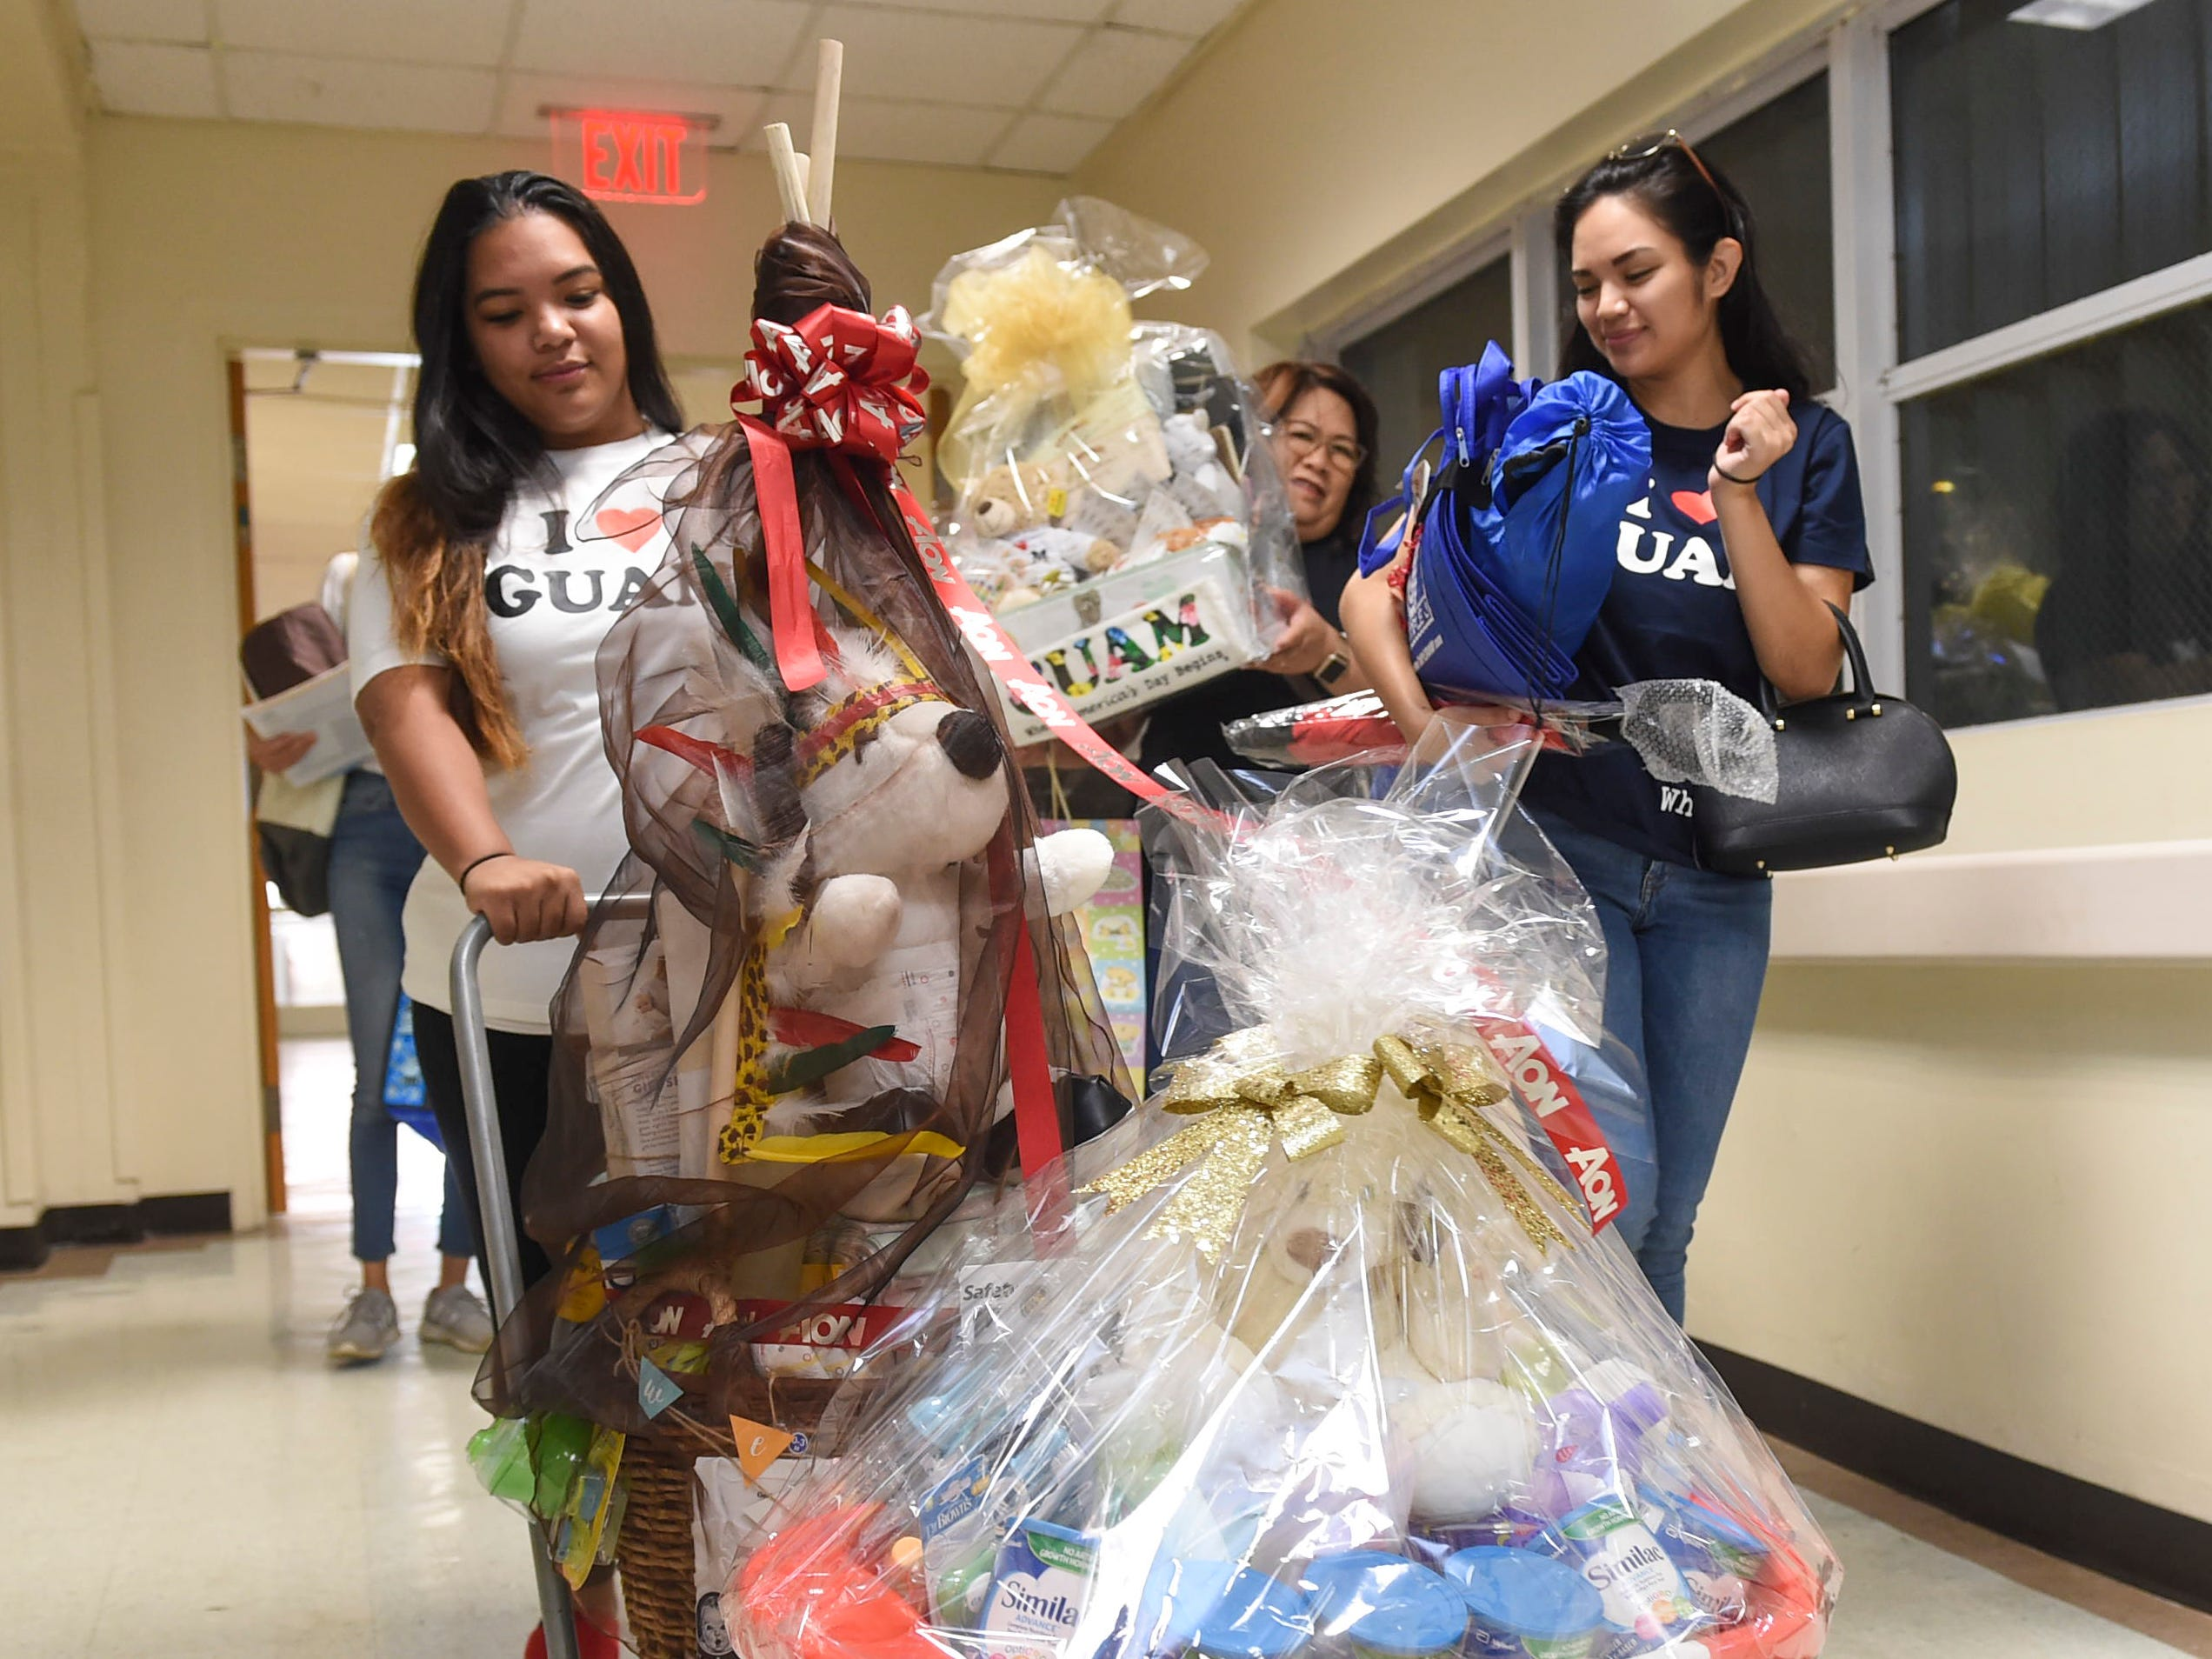 """Archway, Inc. members roll in baskets of gifts for the New Year's Day baby as part of the """"I Love Guam New Year Baby"""" program at Guam Memorial Hospital in Tamuning on Jan. 1, 2019."""